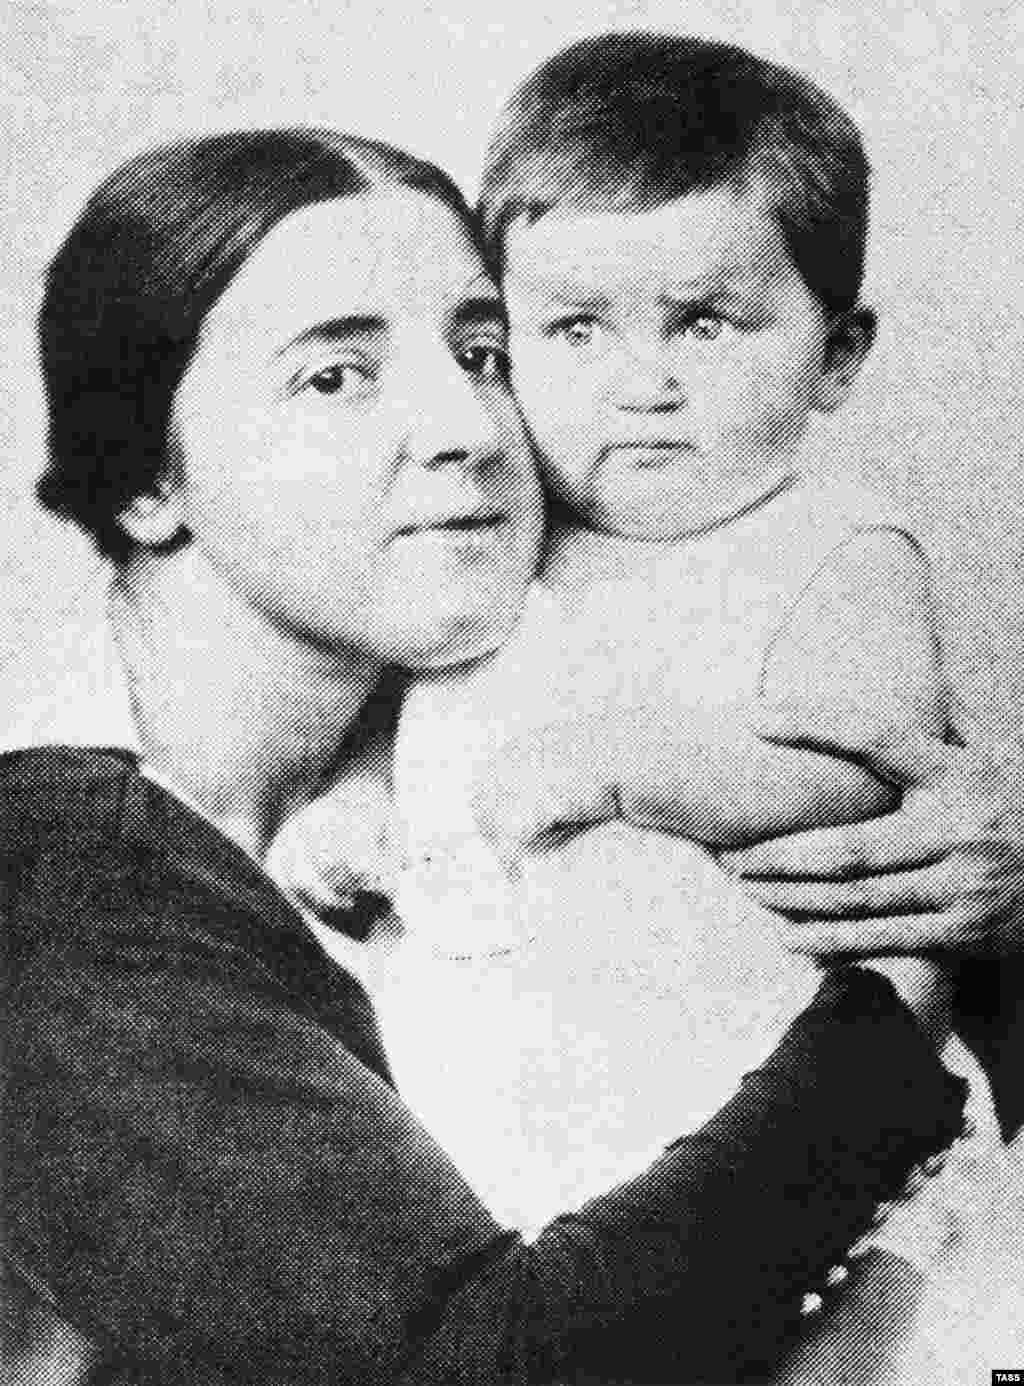 Nadezhda Alliluyeva, Josef Stalin's second wife, shown here with their son, Vasily, in 1922. The daughter of a revolutionary railroad worker, Alliluyeva met Stalin while he hid in her family's house in 1911. They married in 1919, when Stalin was 41 and Nadezhda was 18. Nadezhda died in 1932, officially of appendicitis. Some believe she committed suicide, while others contend that Stalin killed her. Vasily was born in 1921. He was a Soviet pilot during World War II and was made a general after the war. After Stalin died, Vasily was sentenced to eight years in prison. He was released in 1960. He was allowed to wear his uniform and medals. He died of alcholism in 1962 and was partially rehabilitated in 1999.